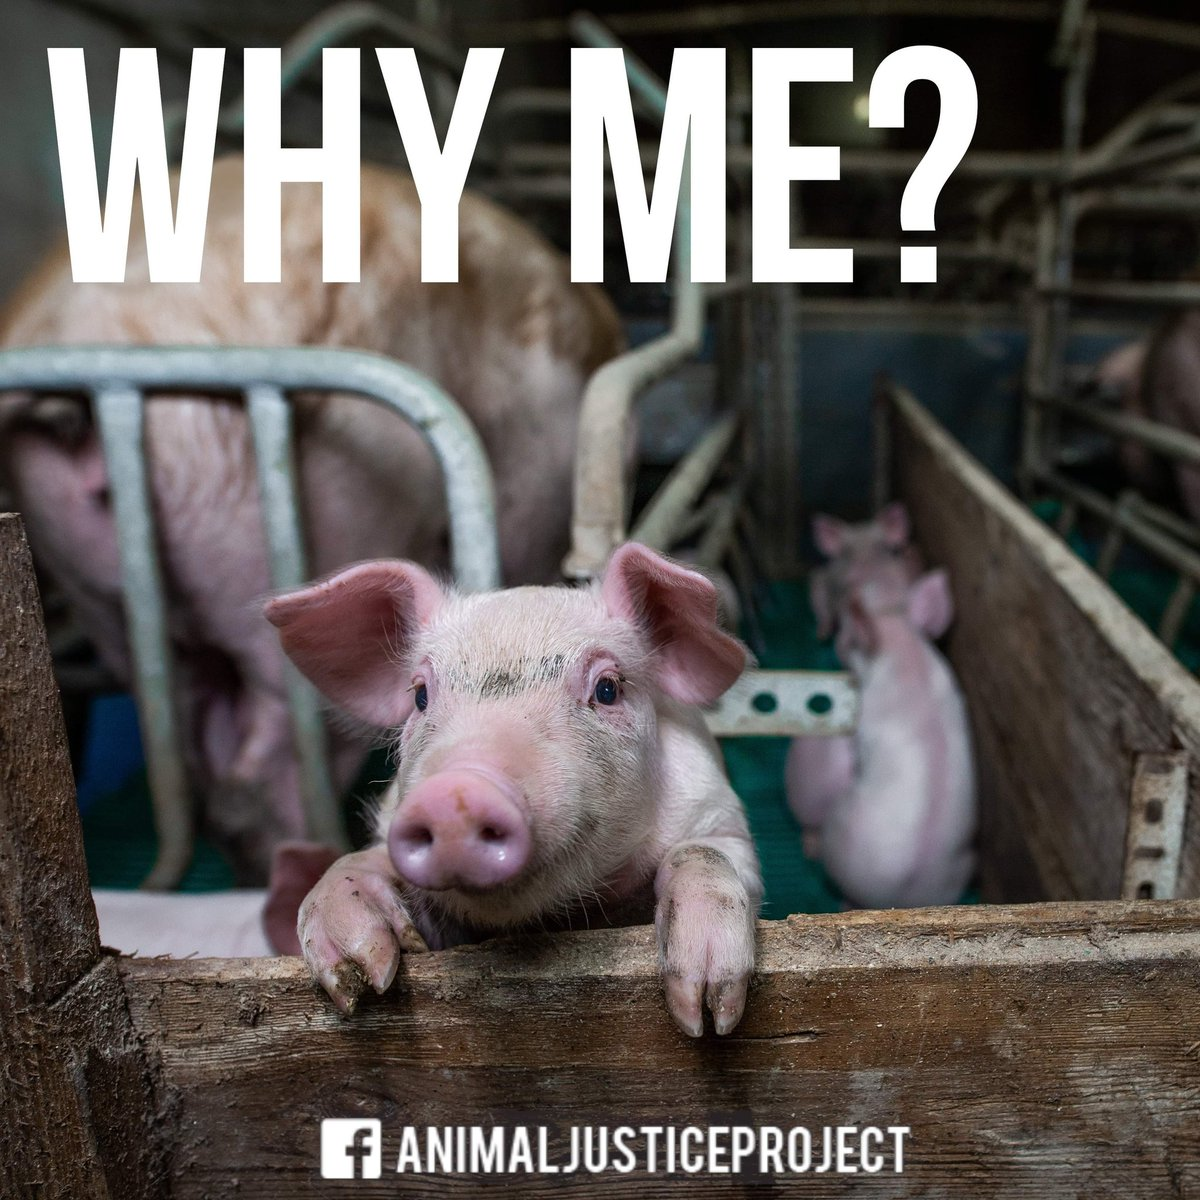 """""""Animals on factory farms all face pain and fear, just like the animals we share our homes with, yet are repeatedly abused in shocking ways."""" - Peter Dinklage Help us continue fighting for all animals by donating here: animaljusticeproject.com/donate #charitytuesday"""